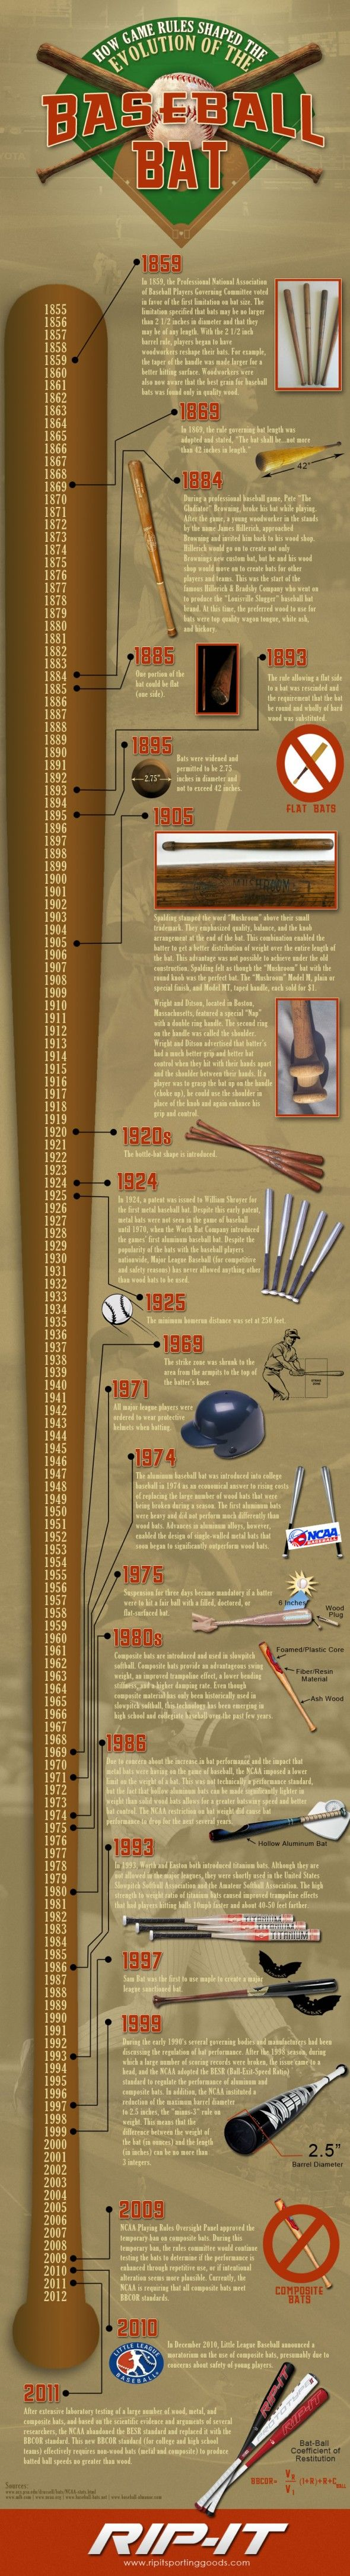 The Evolution of the Baseball Bat